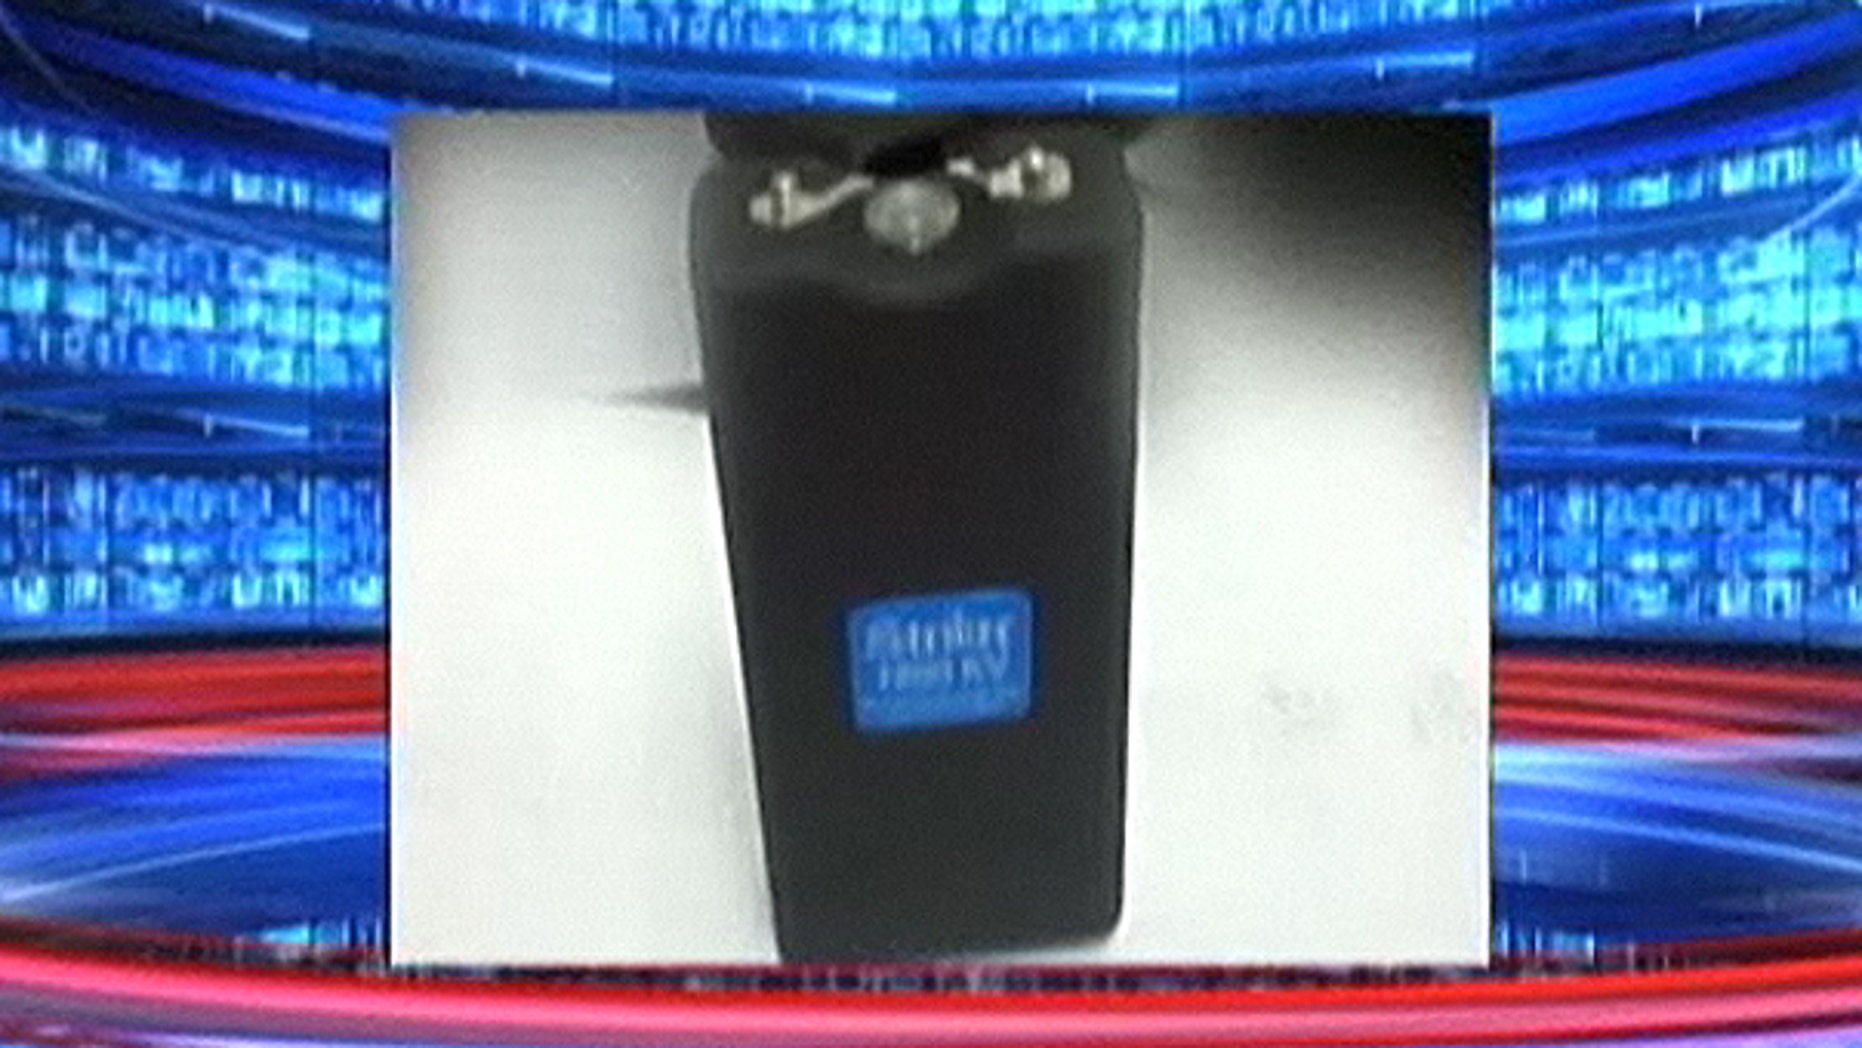 This screengrab from Fox 5 shows the stun gun found by JetBlue employees.